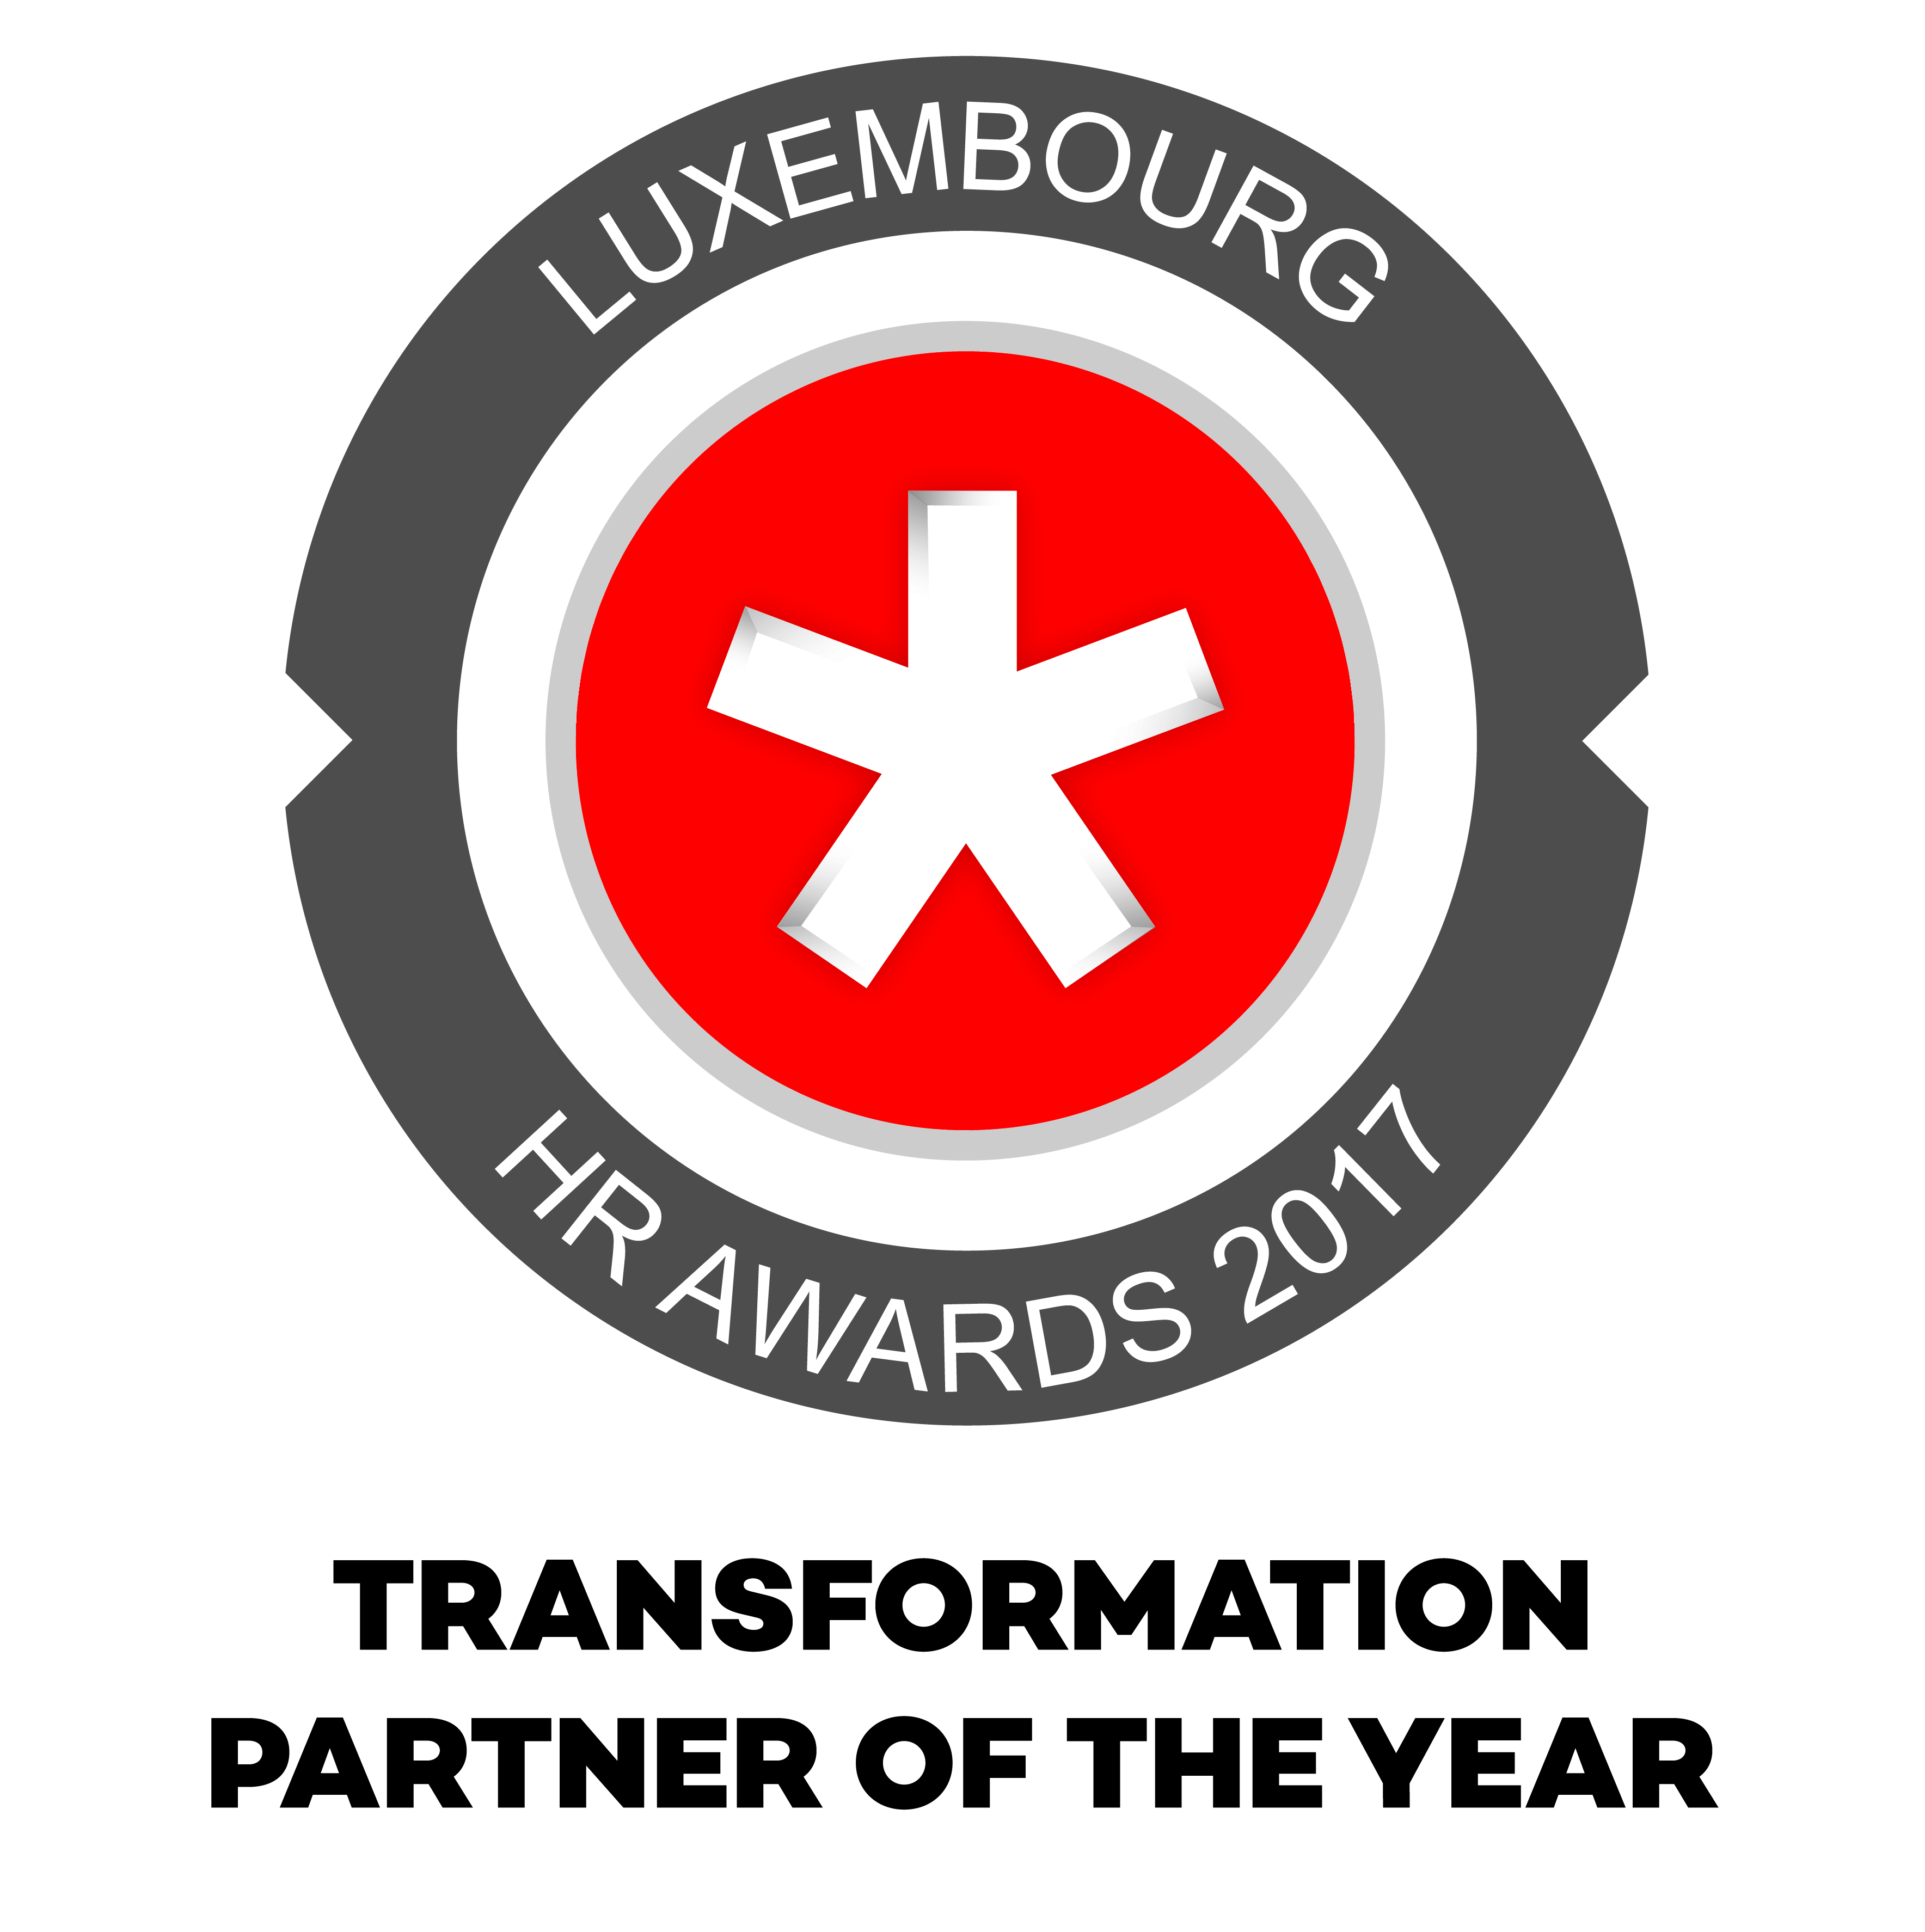 Transformation Partner of the Year